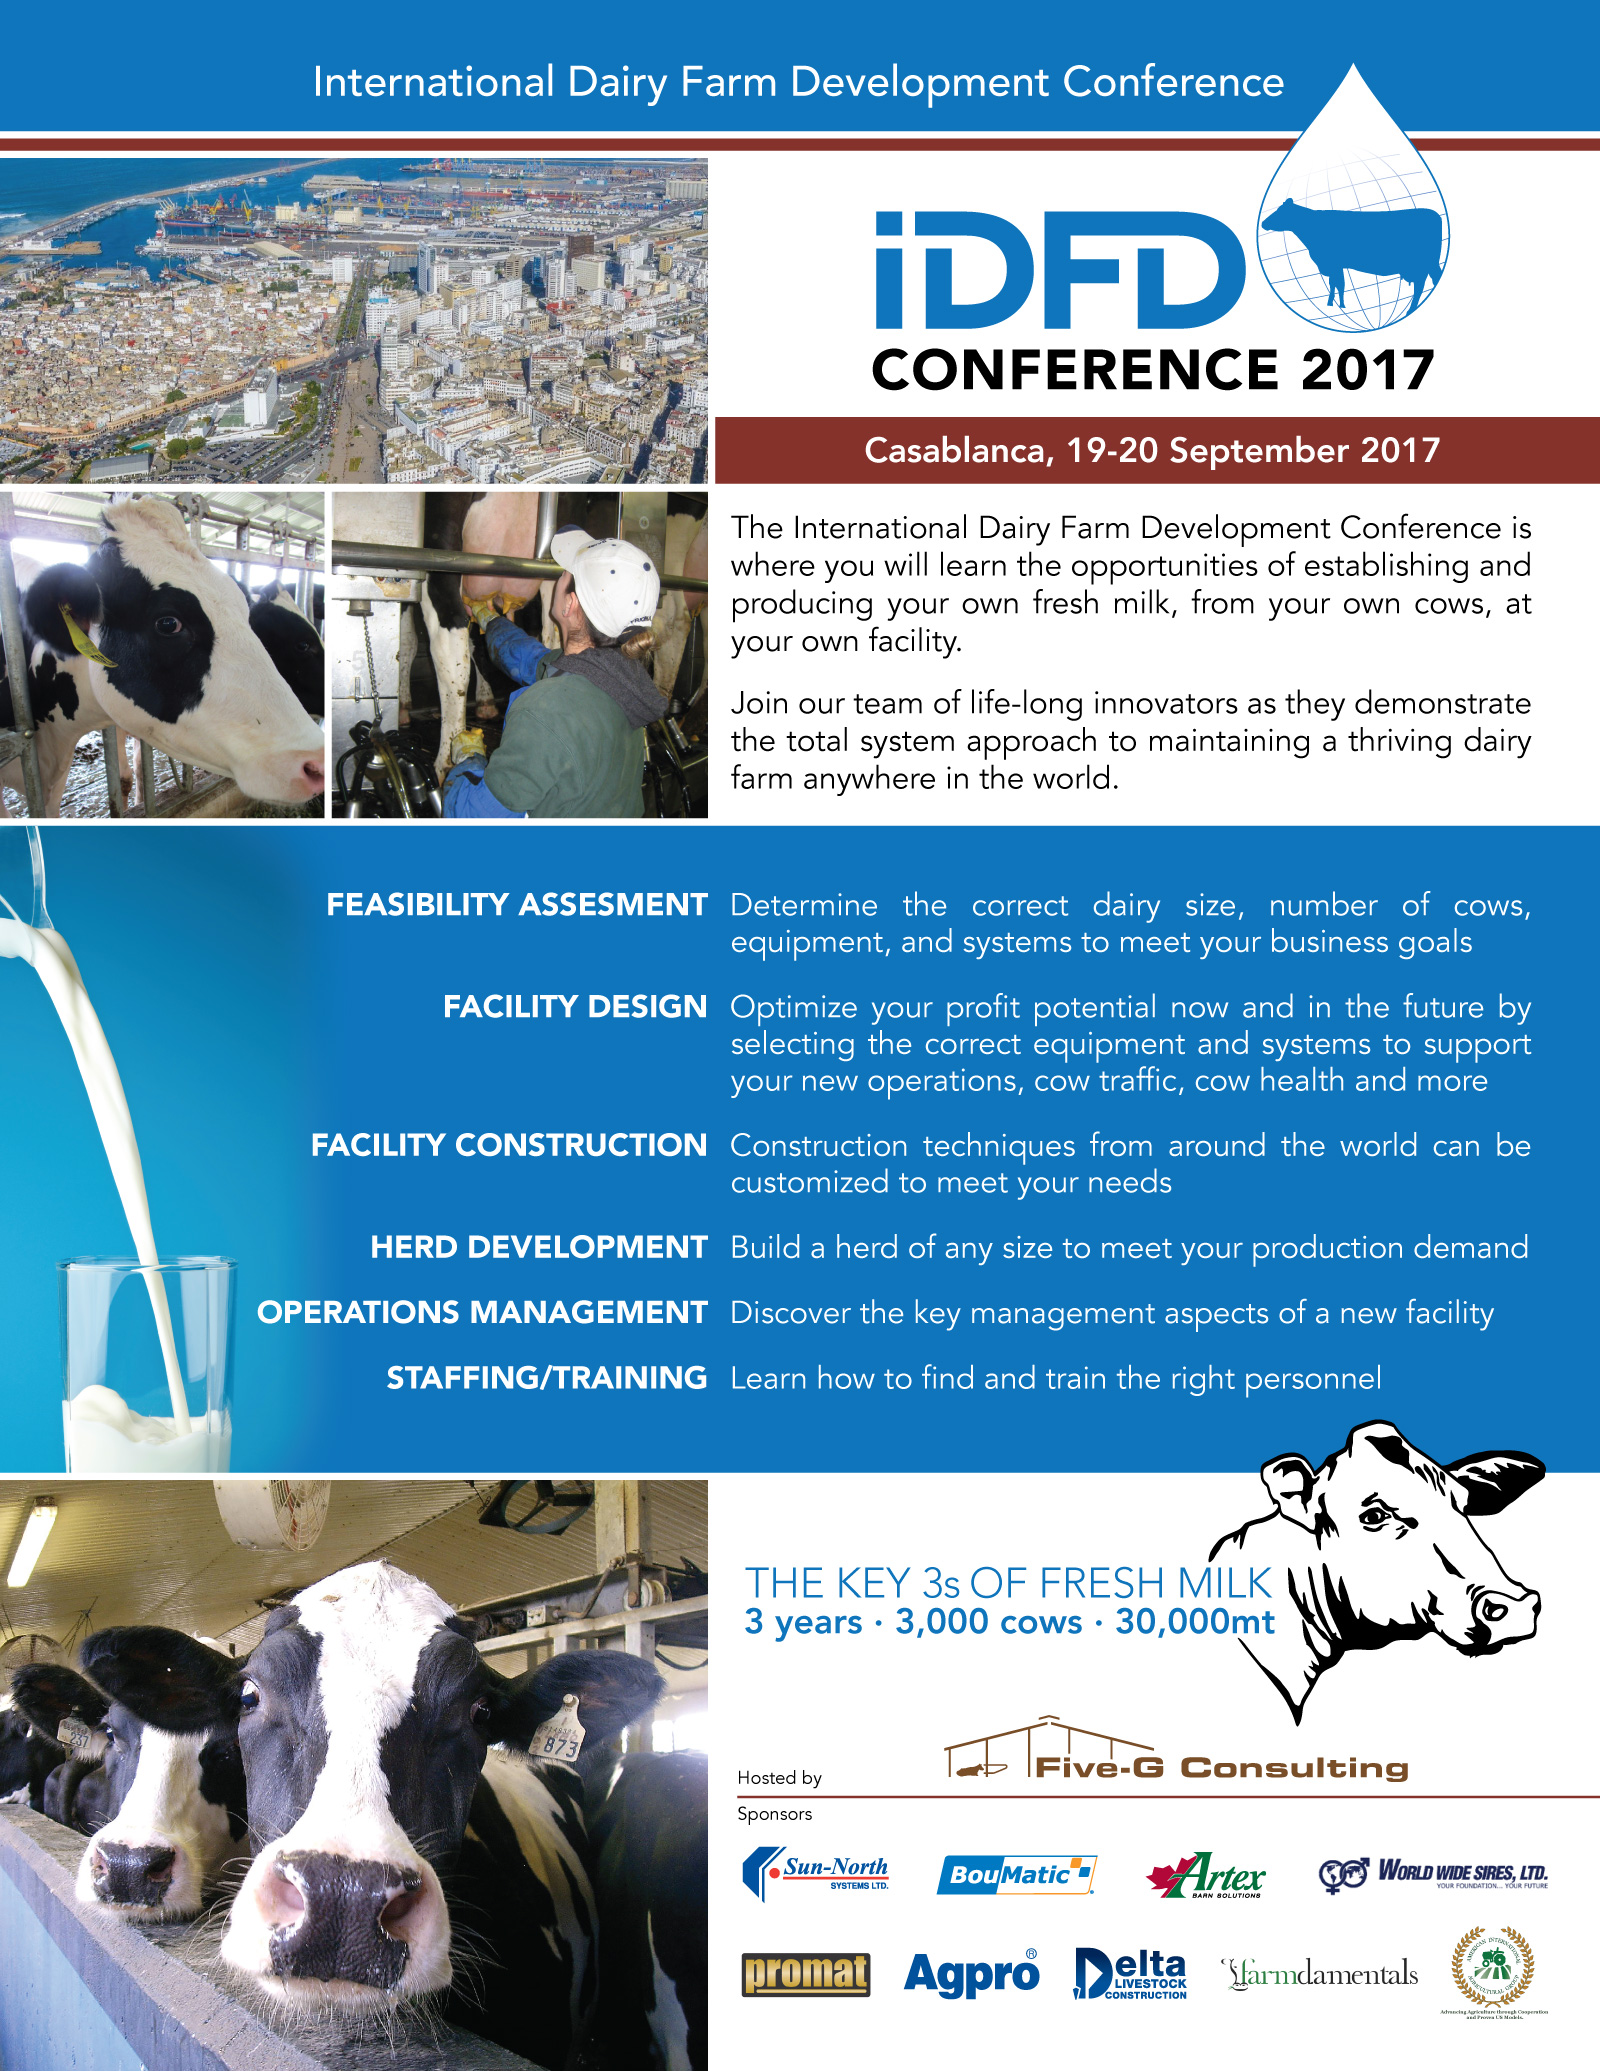 IDFDConference Flyer2017